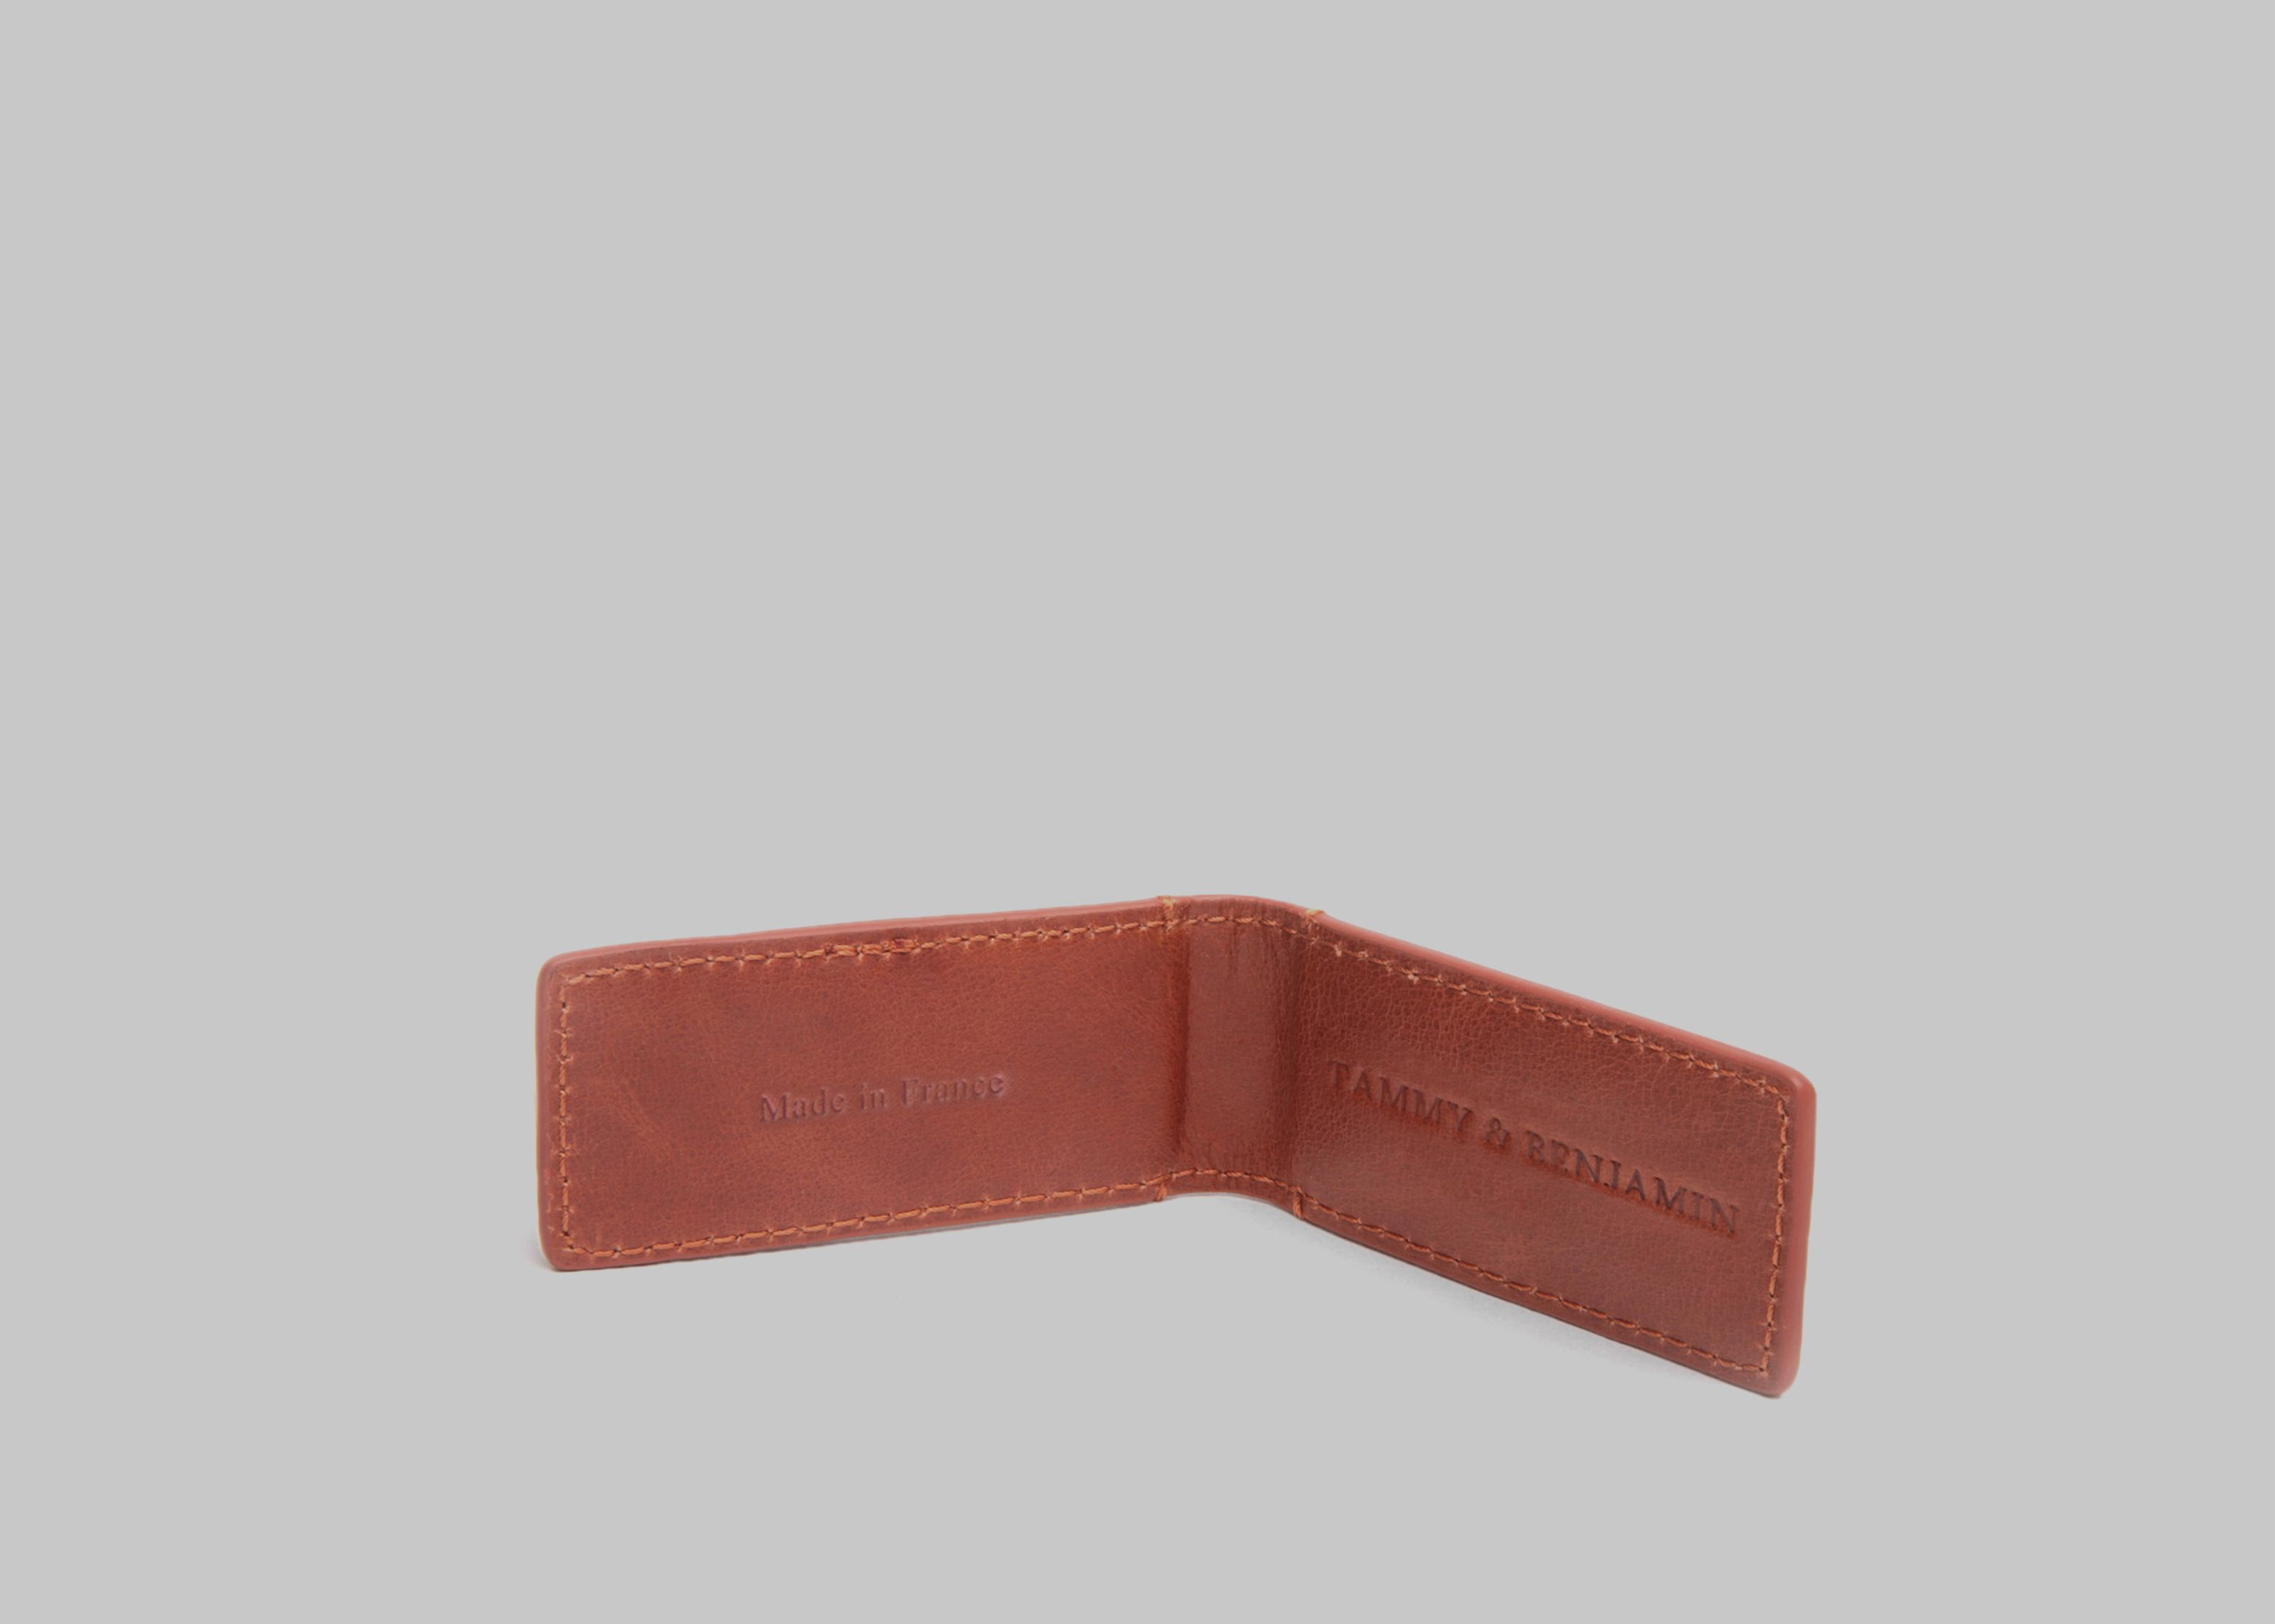 Lusso Money Clip - Tammy & Benjamin